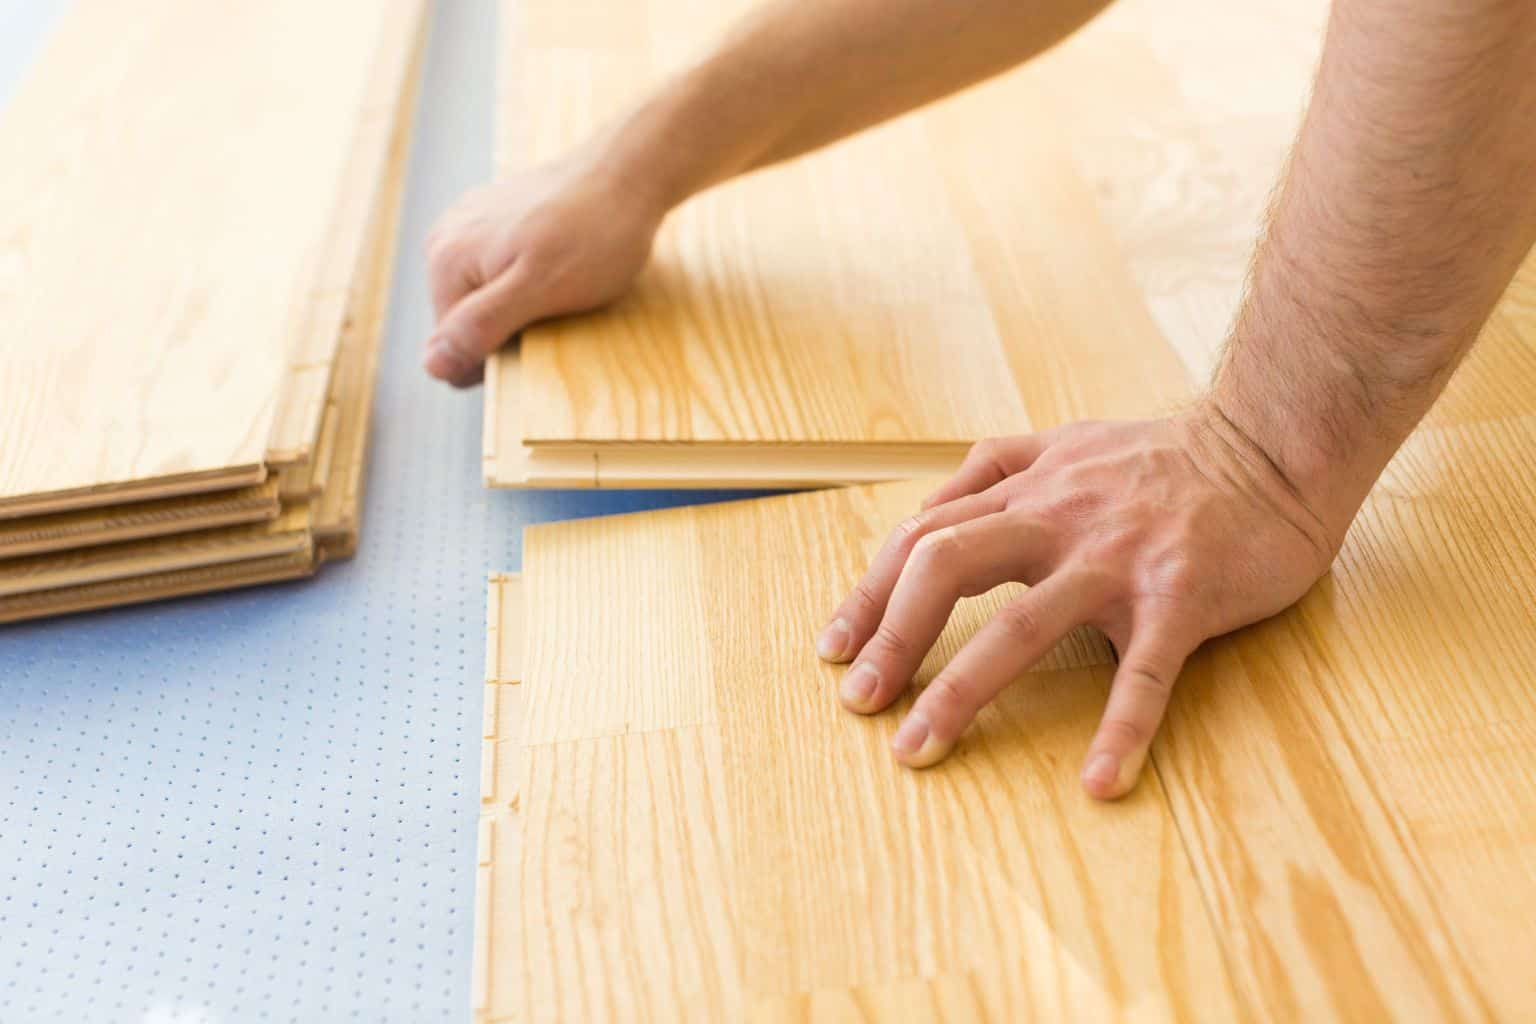 How to lay laminate wood floor 3 errors to avoid the for Laying laminate flooring